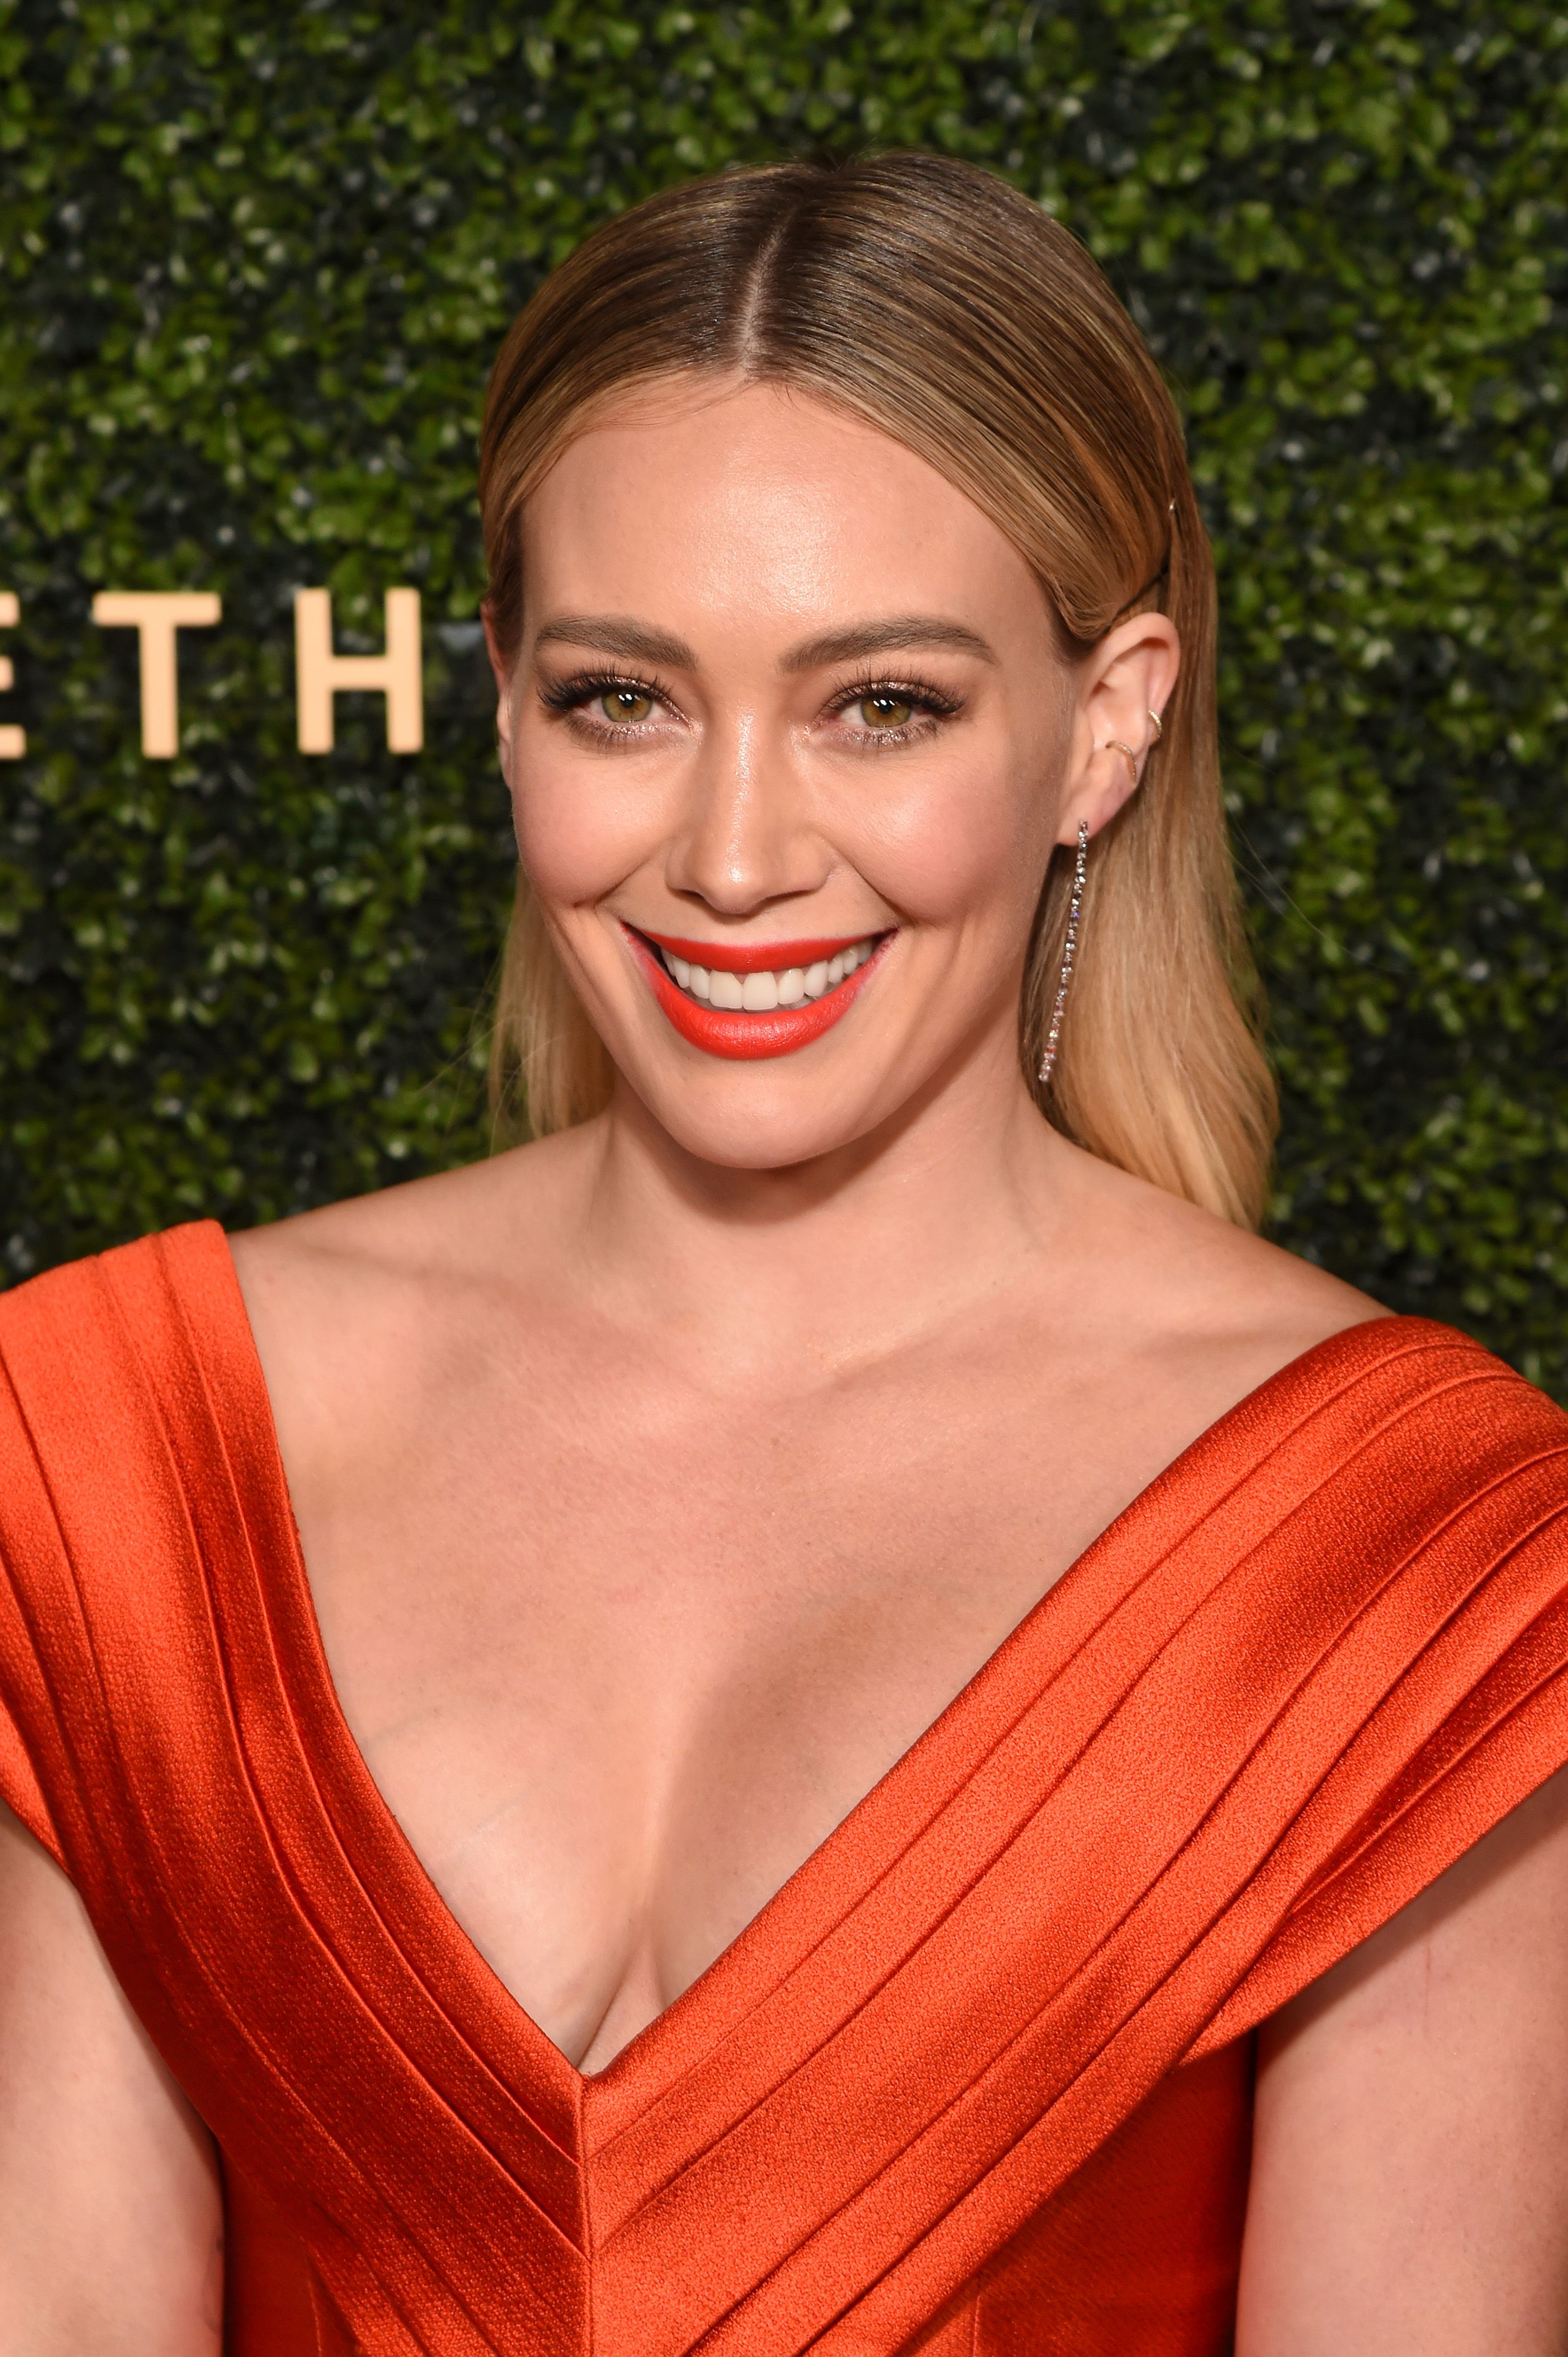 Hilary Duff Swears By Bodybuilding Workouts Instead Of Cardio After Giving Birth Last Year